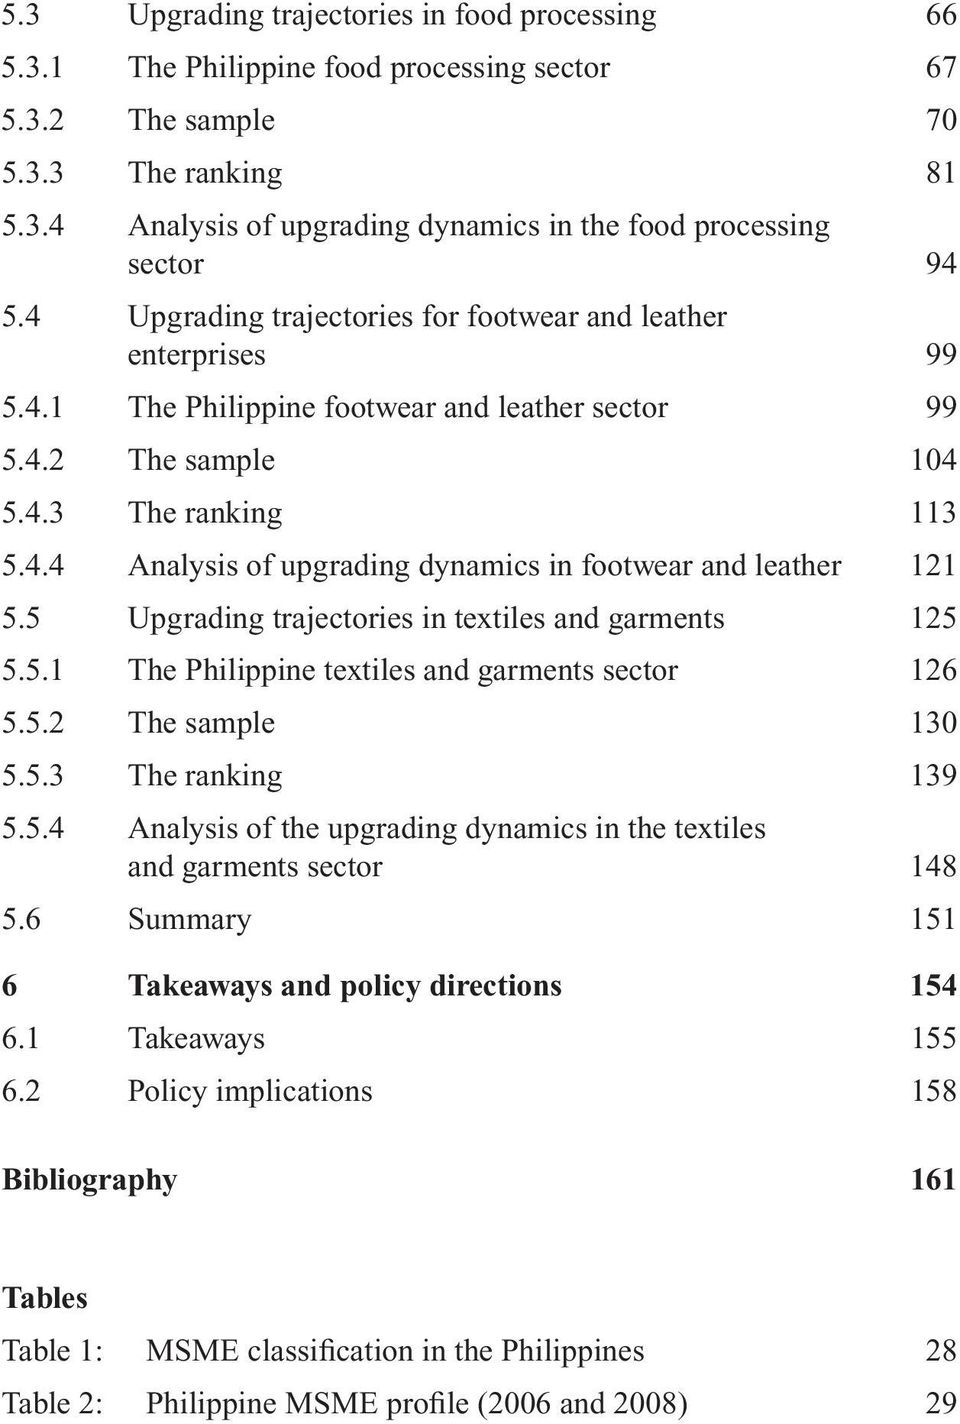 5 Upgrading trajectories in textiles and garments 125 5.5.1 The Philippine textiles and garments sector 126 5.5.2 The sample 130 5.5.3 The ranking 139 5.5.4 Analysis of the upgrading dynamics in the textiles and garments sector 148 5.